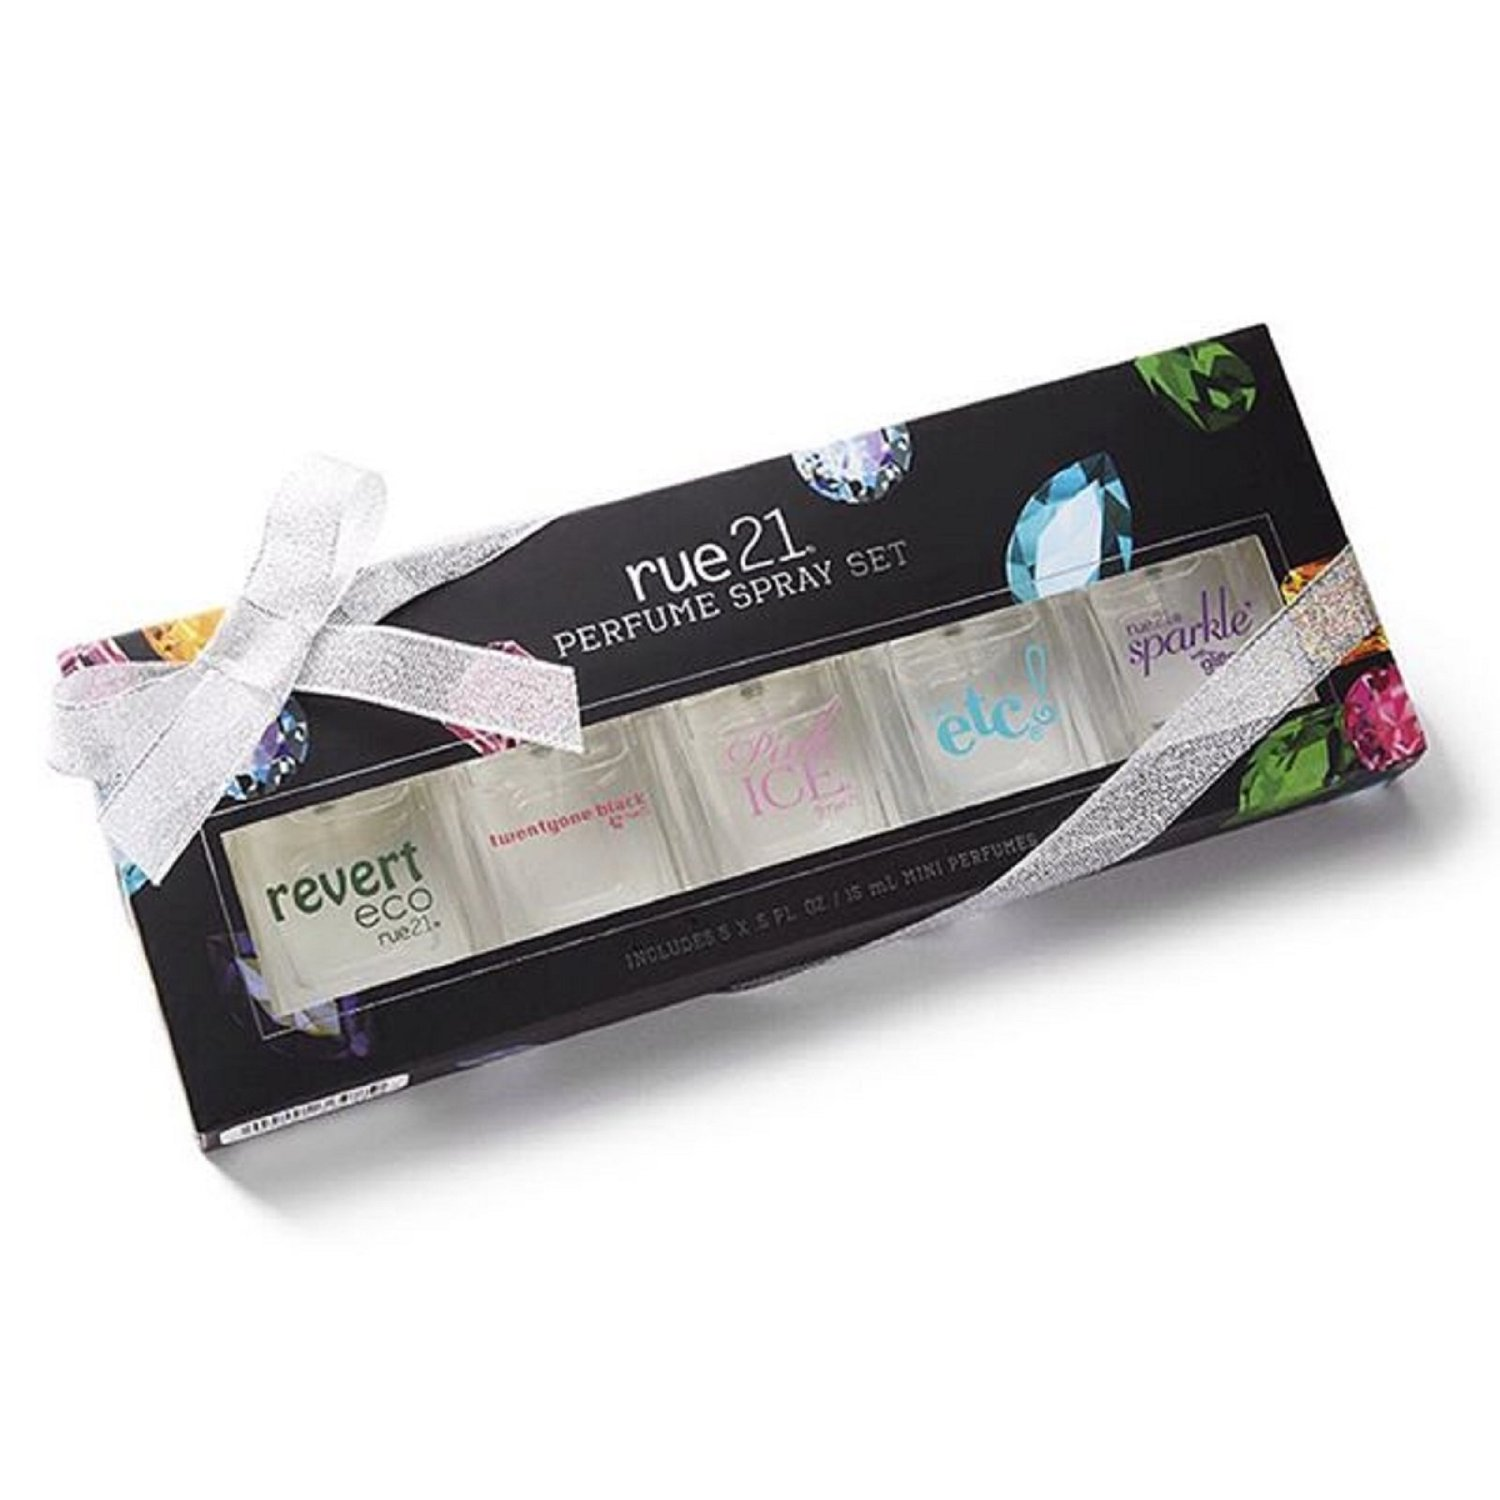 Rue21 Signature Fragrance Gift Set Sparkle with Glitter (.5 Oz.), Etc (.5 Oz.), Pink Ice, Twentyone Black (.5 Oz.), & Revert Eco (.5 Oz.)